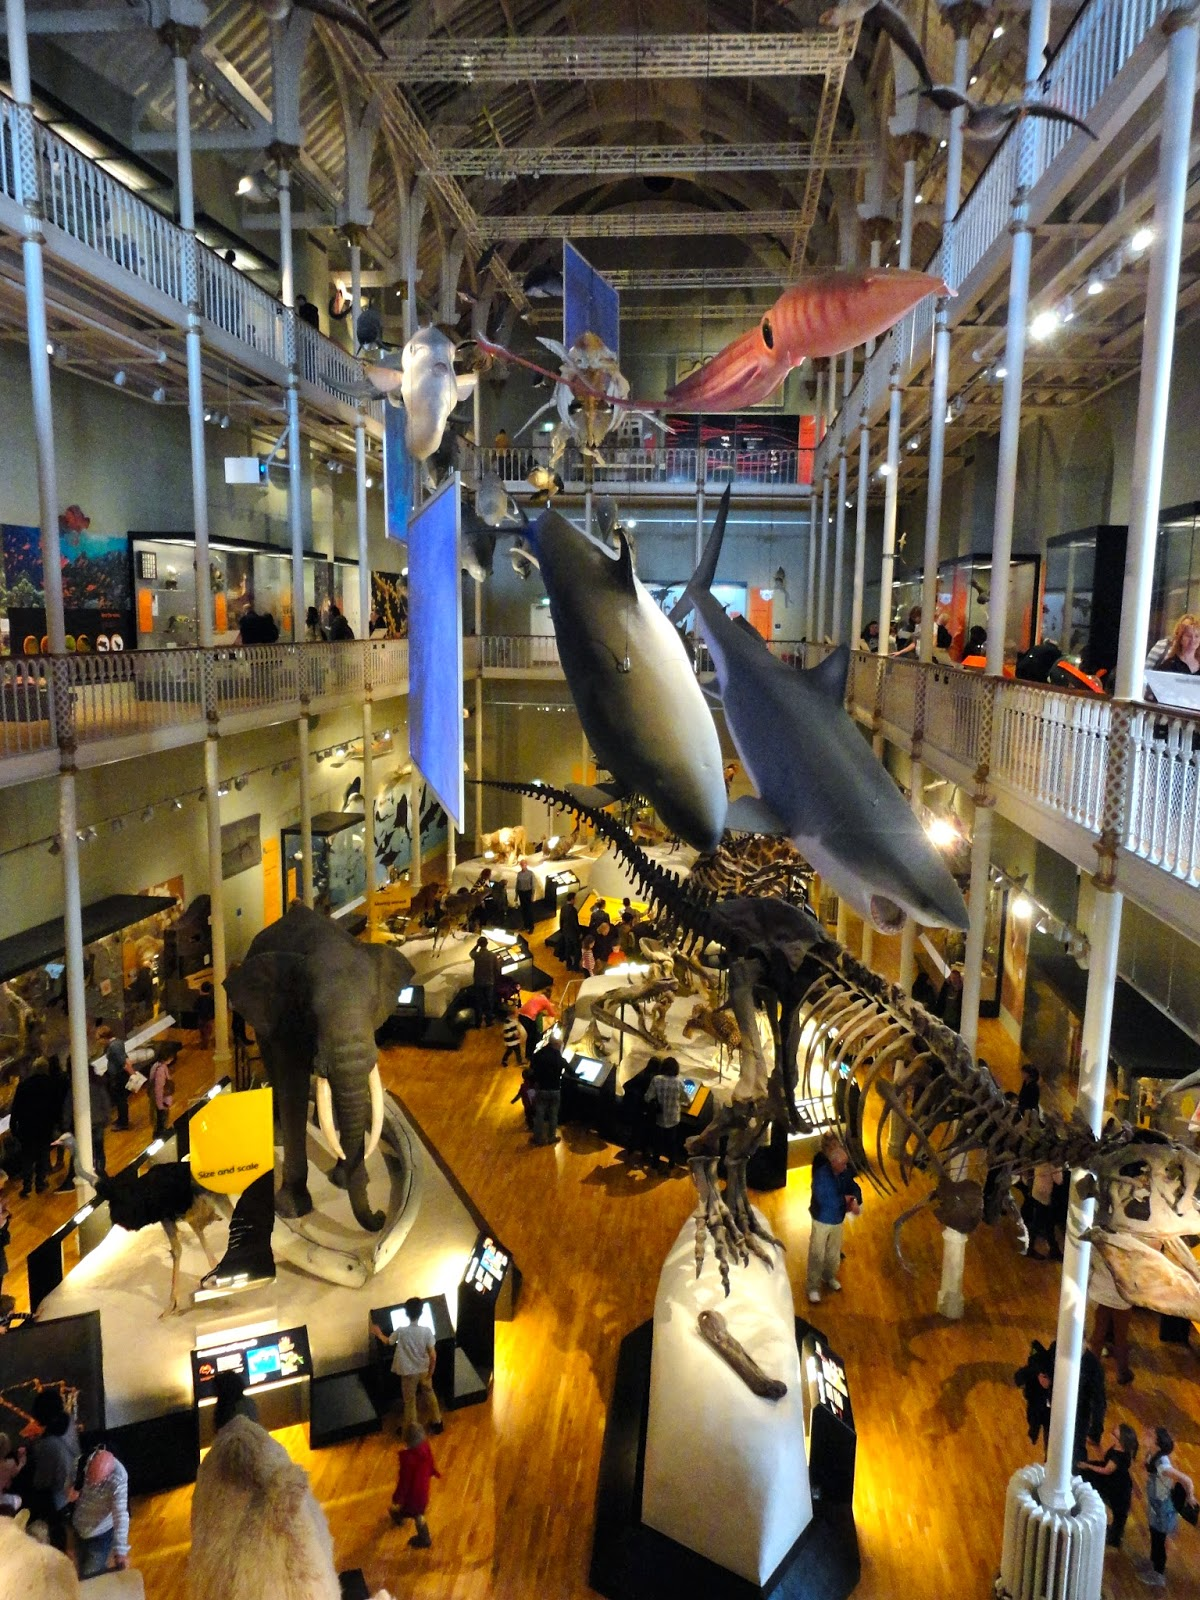 Natural History hall in the National Museum of Scotland, Edinburgh